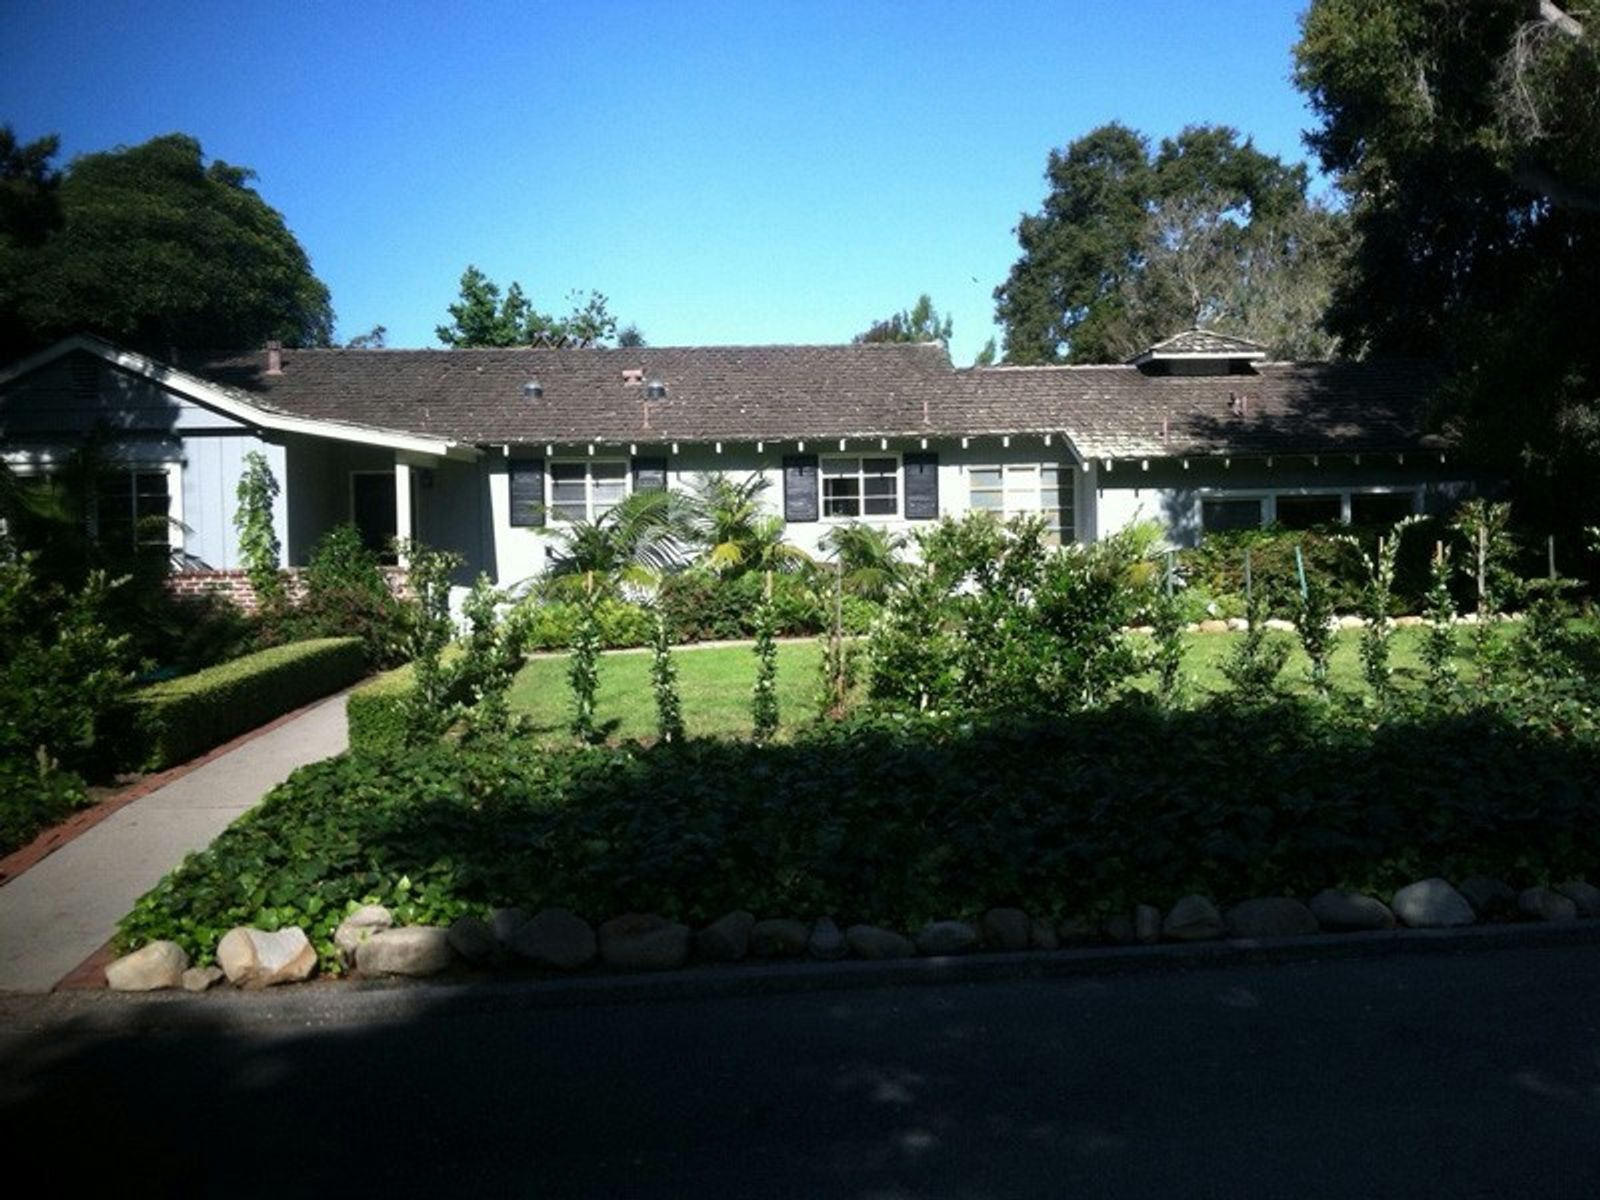 Montecito Oaks Cottage, Montecito CA Single Family Home - Santa Barbara Real Estate